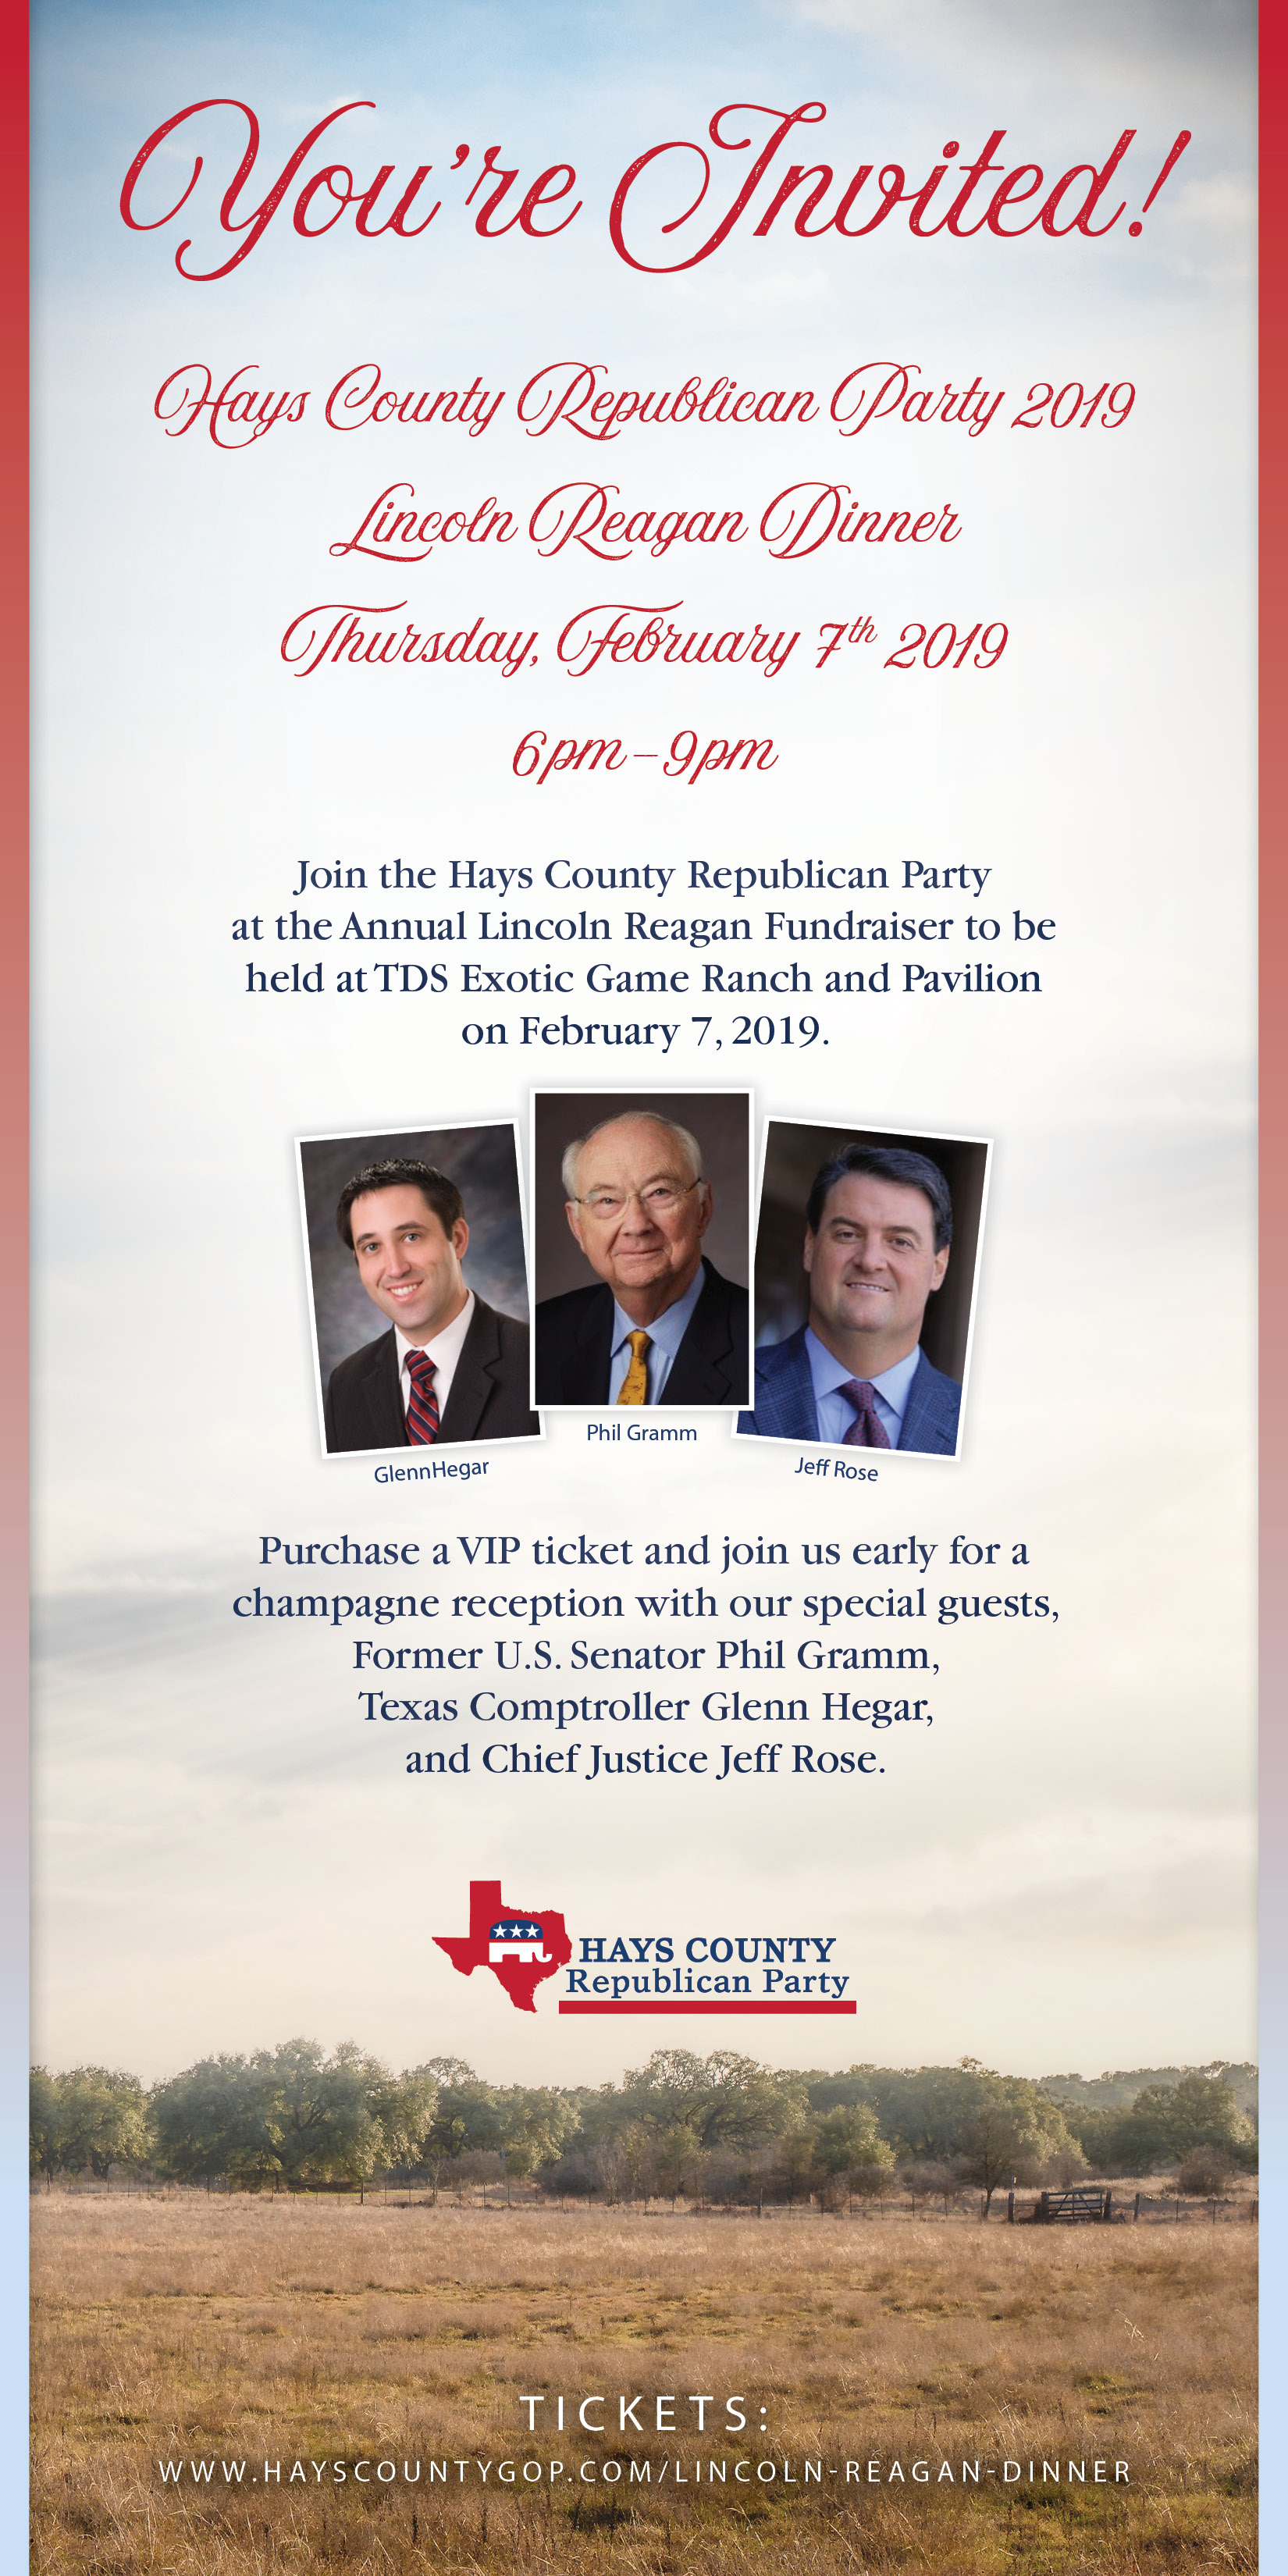 HaysCountyGOP_TX_event_reminder_FS_HR.jpg